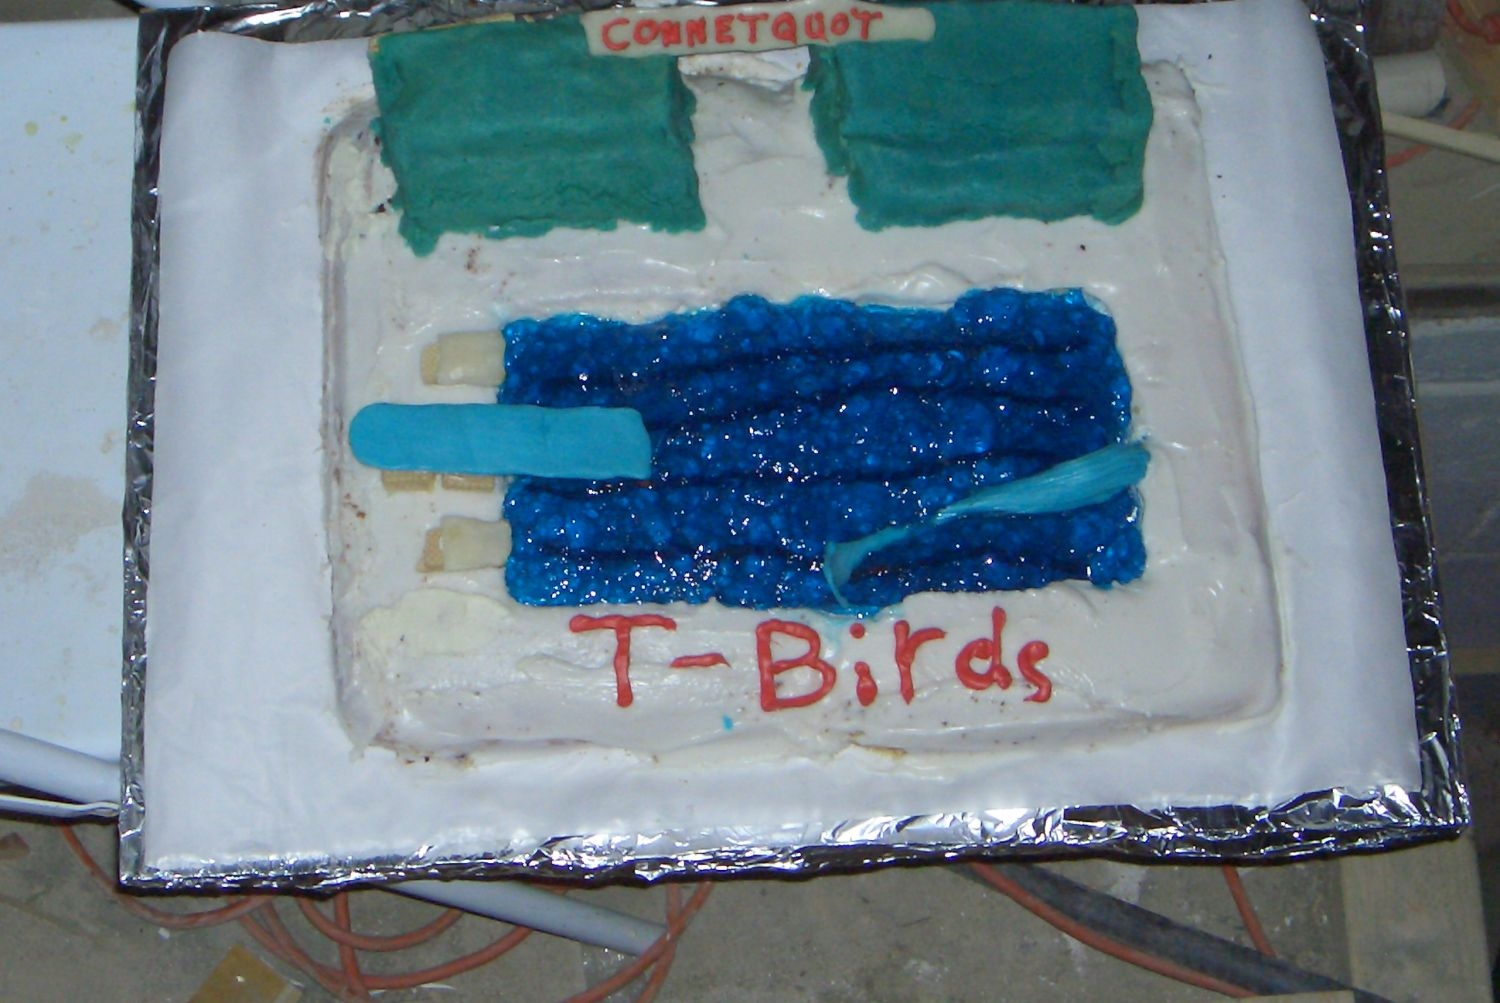 End Of The Season Swimming Cake.  White cake with vanilla icing, brownie bleackers covered in almond paste, pulled sugar whale, diving board, blocks, and connetquot sign,...